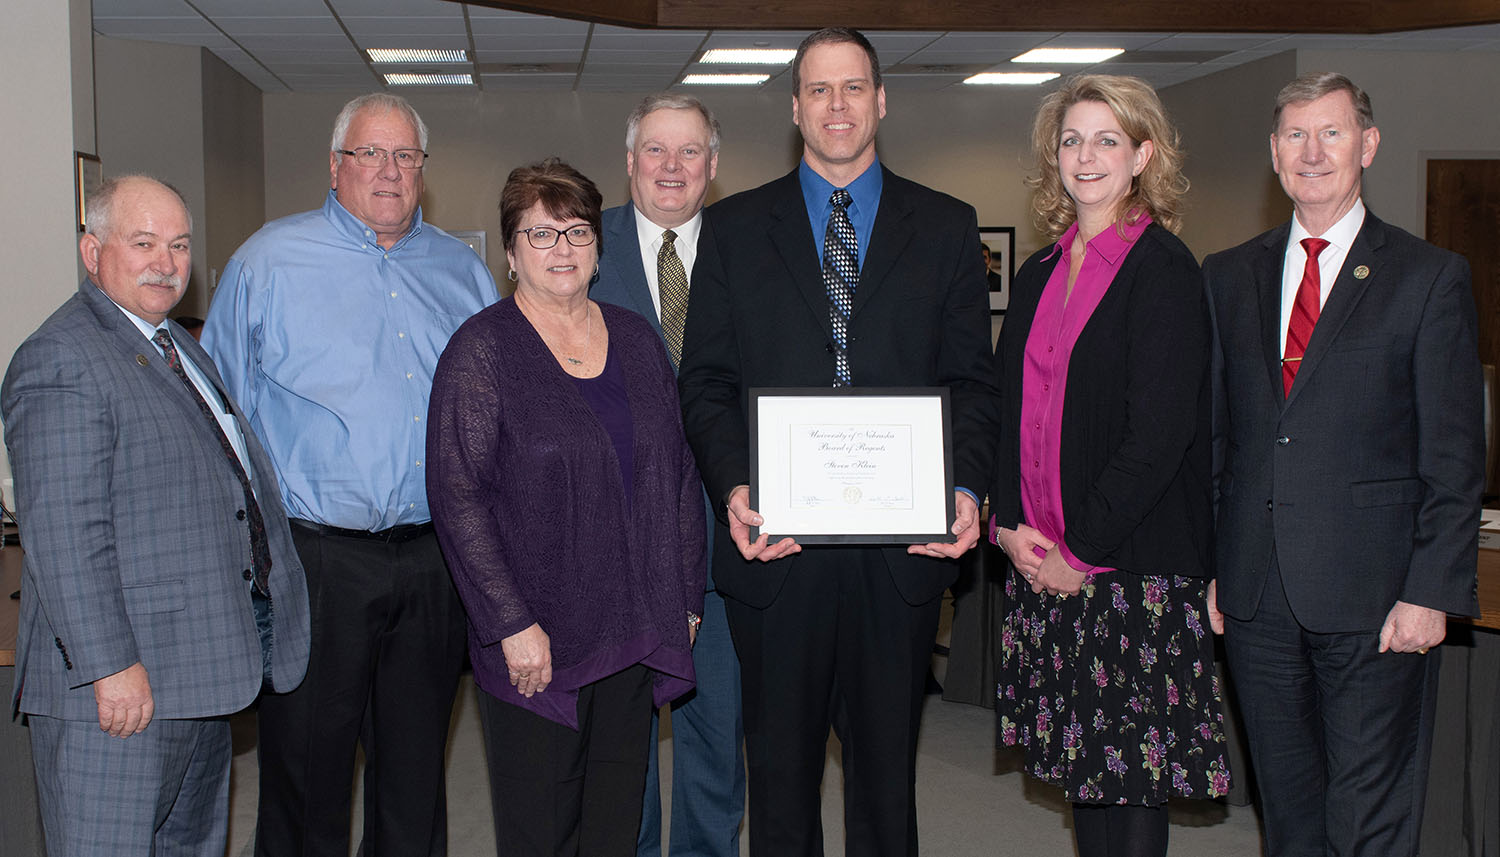 Steven Klein was recognized with the KUDOS award at last week's University of Nebraska Board of Regents meeting.